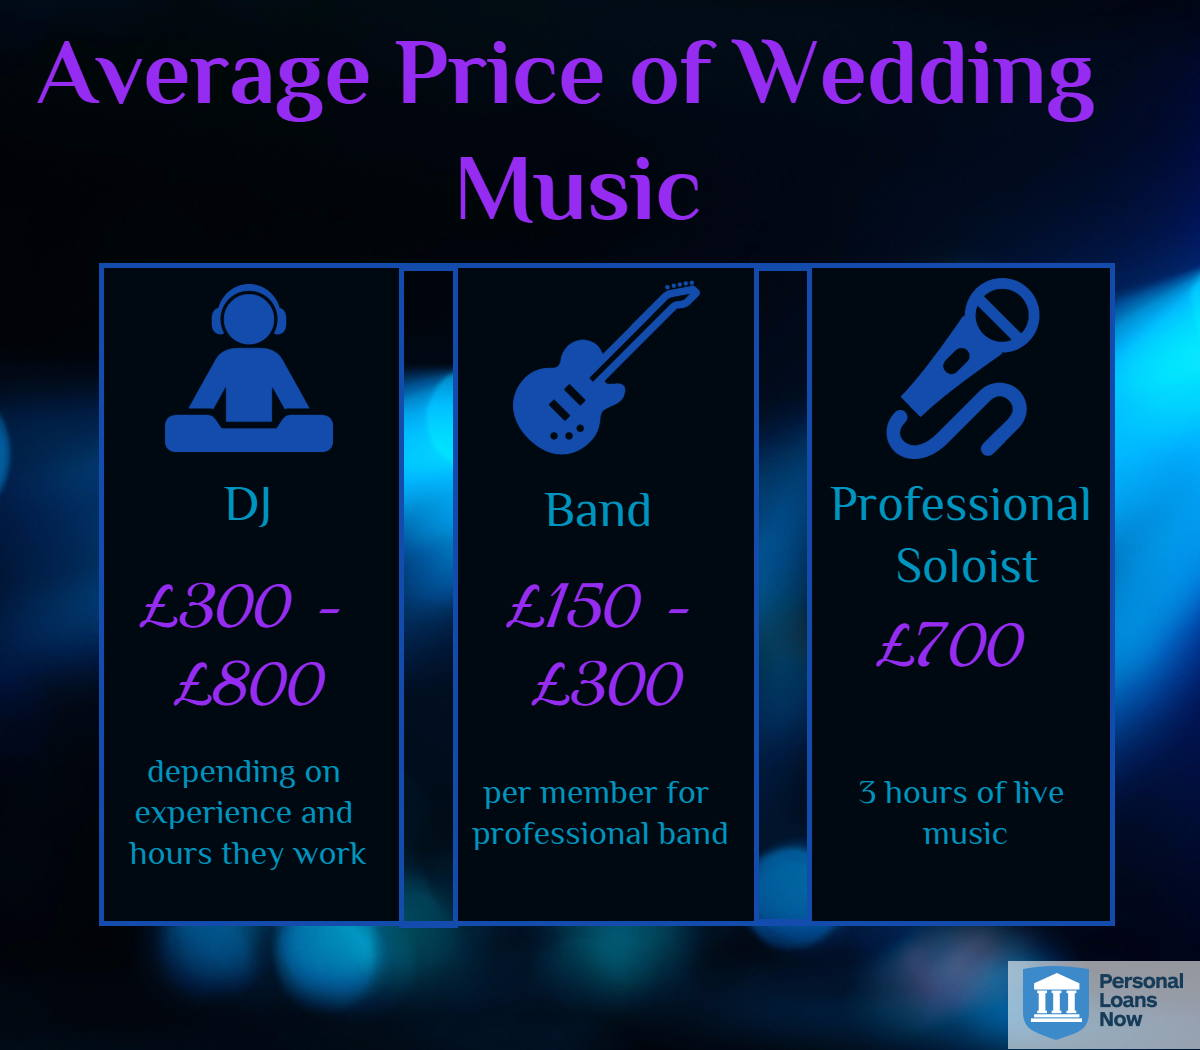 wedding music - Personal Loans Now